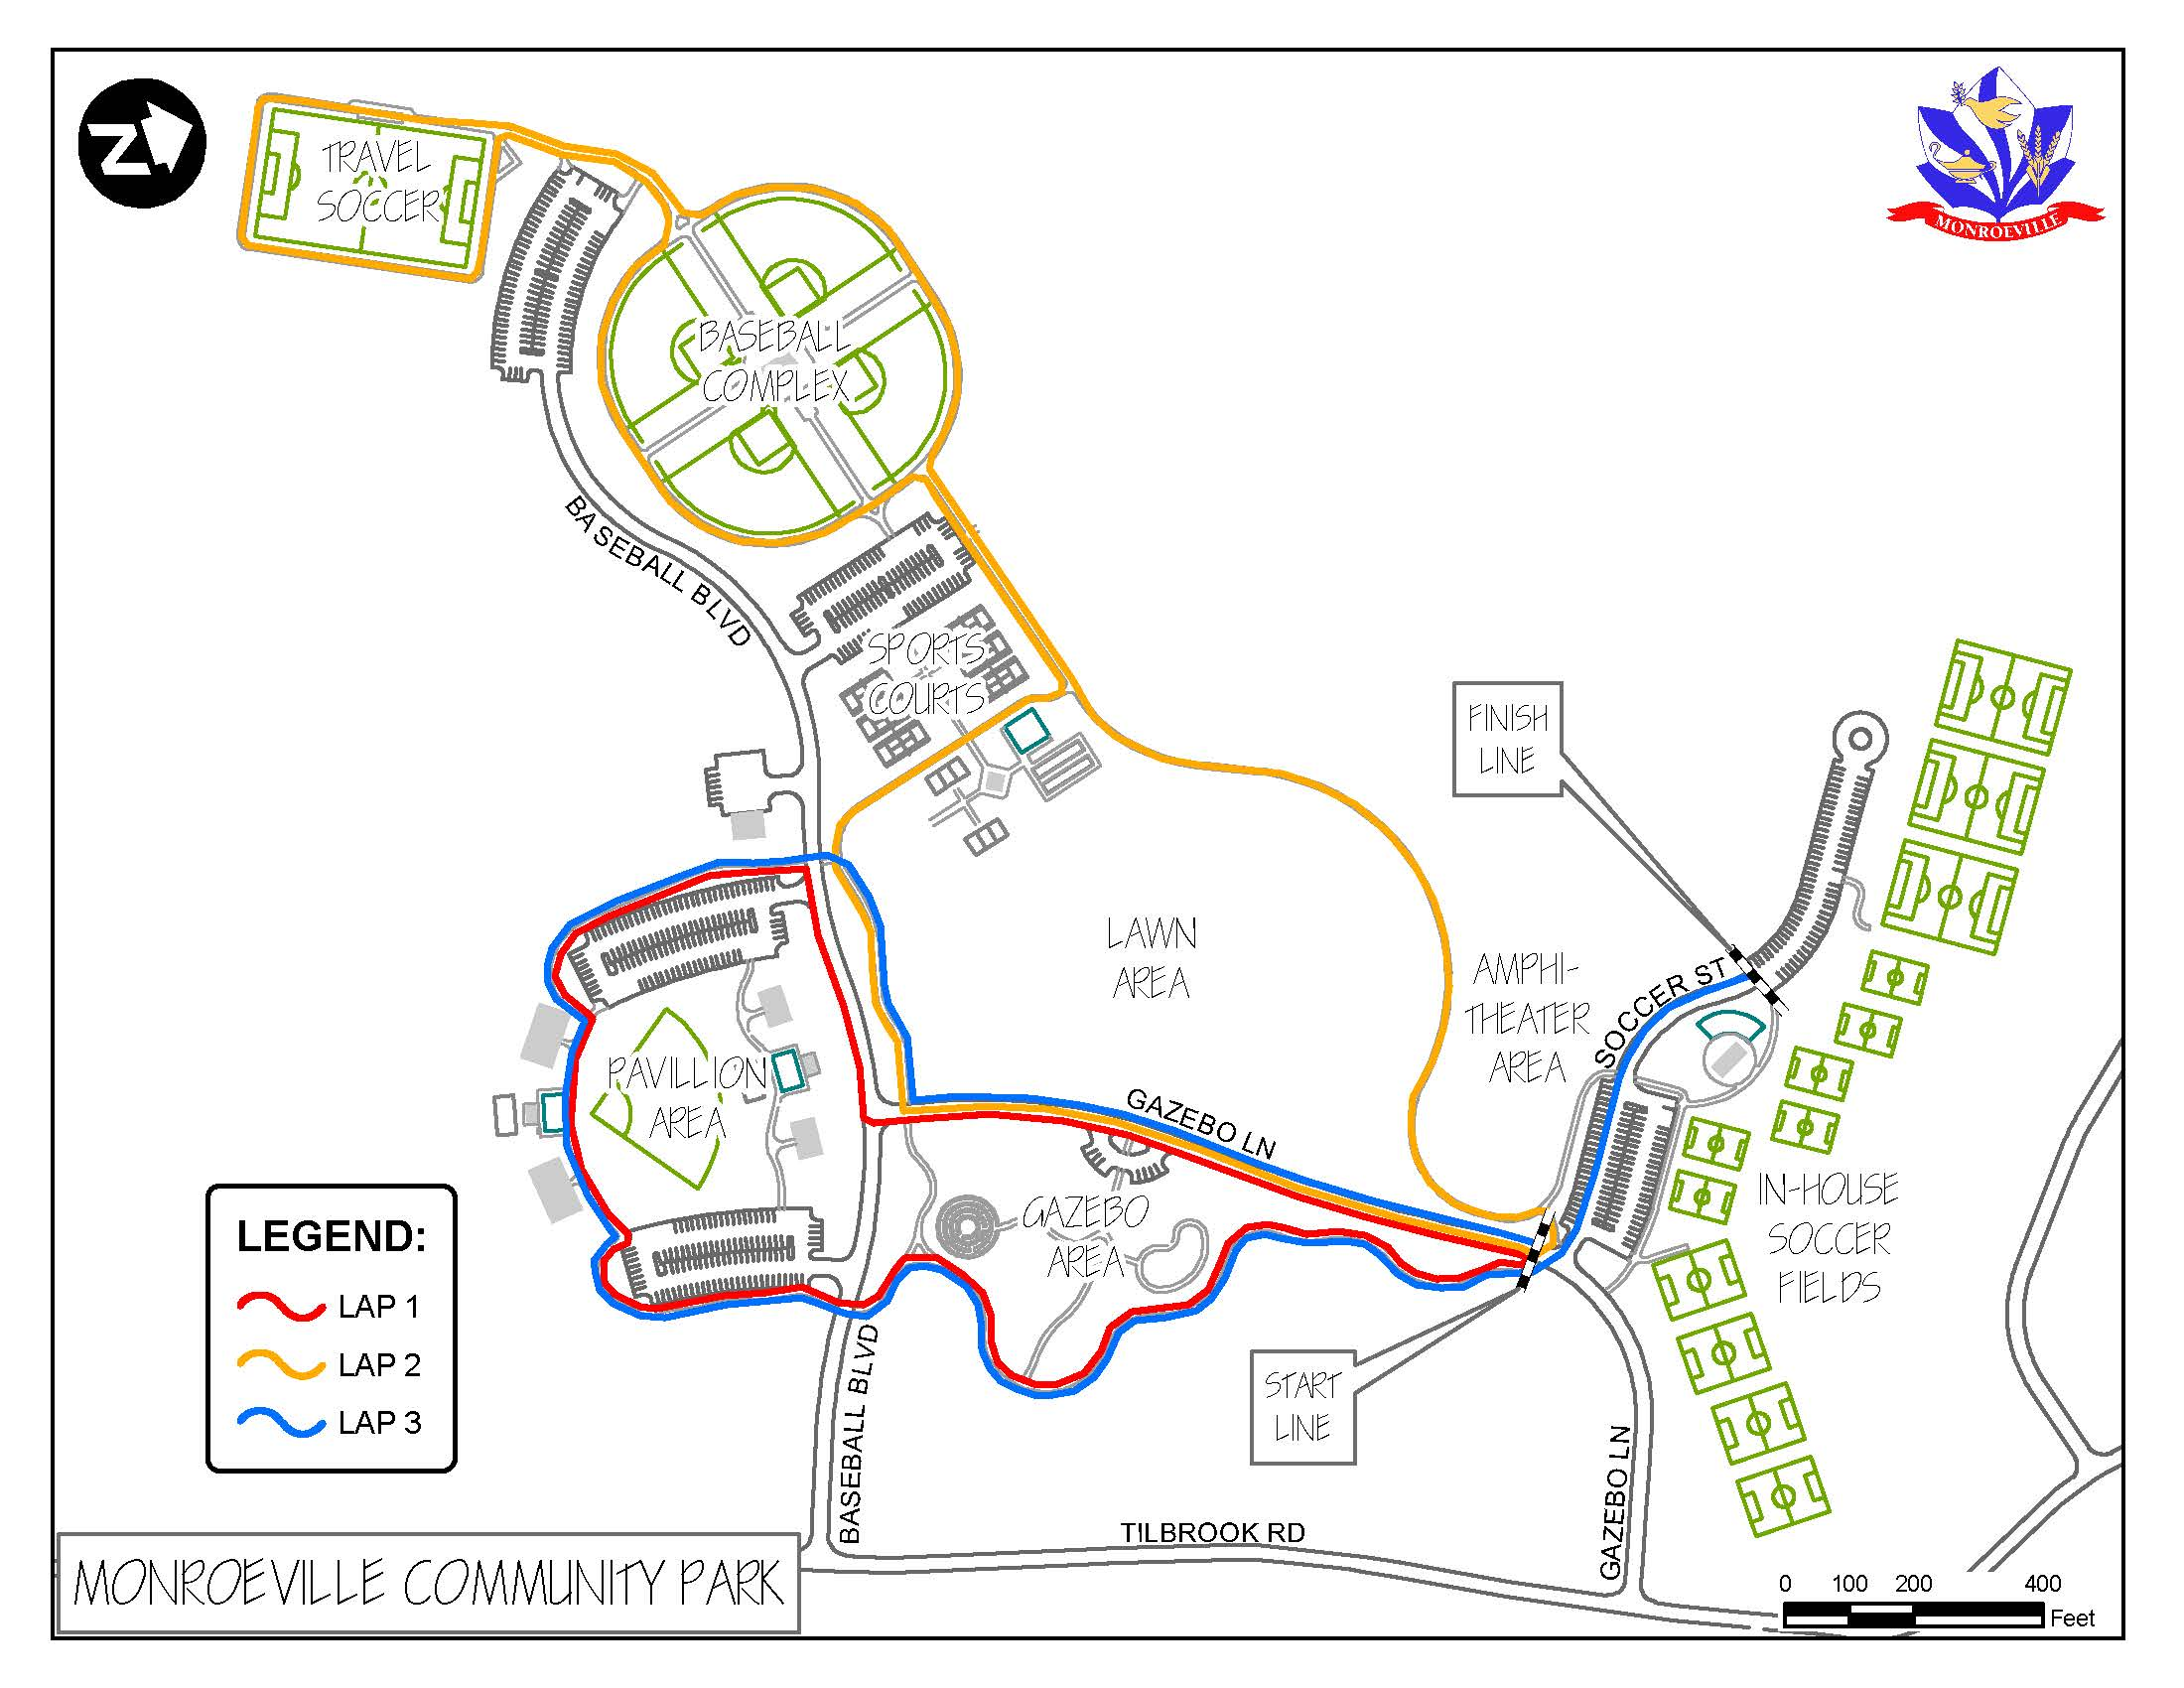 Monroeville Foundation Community Day Race/Walk Map